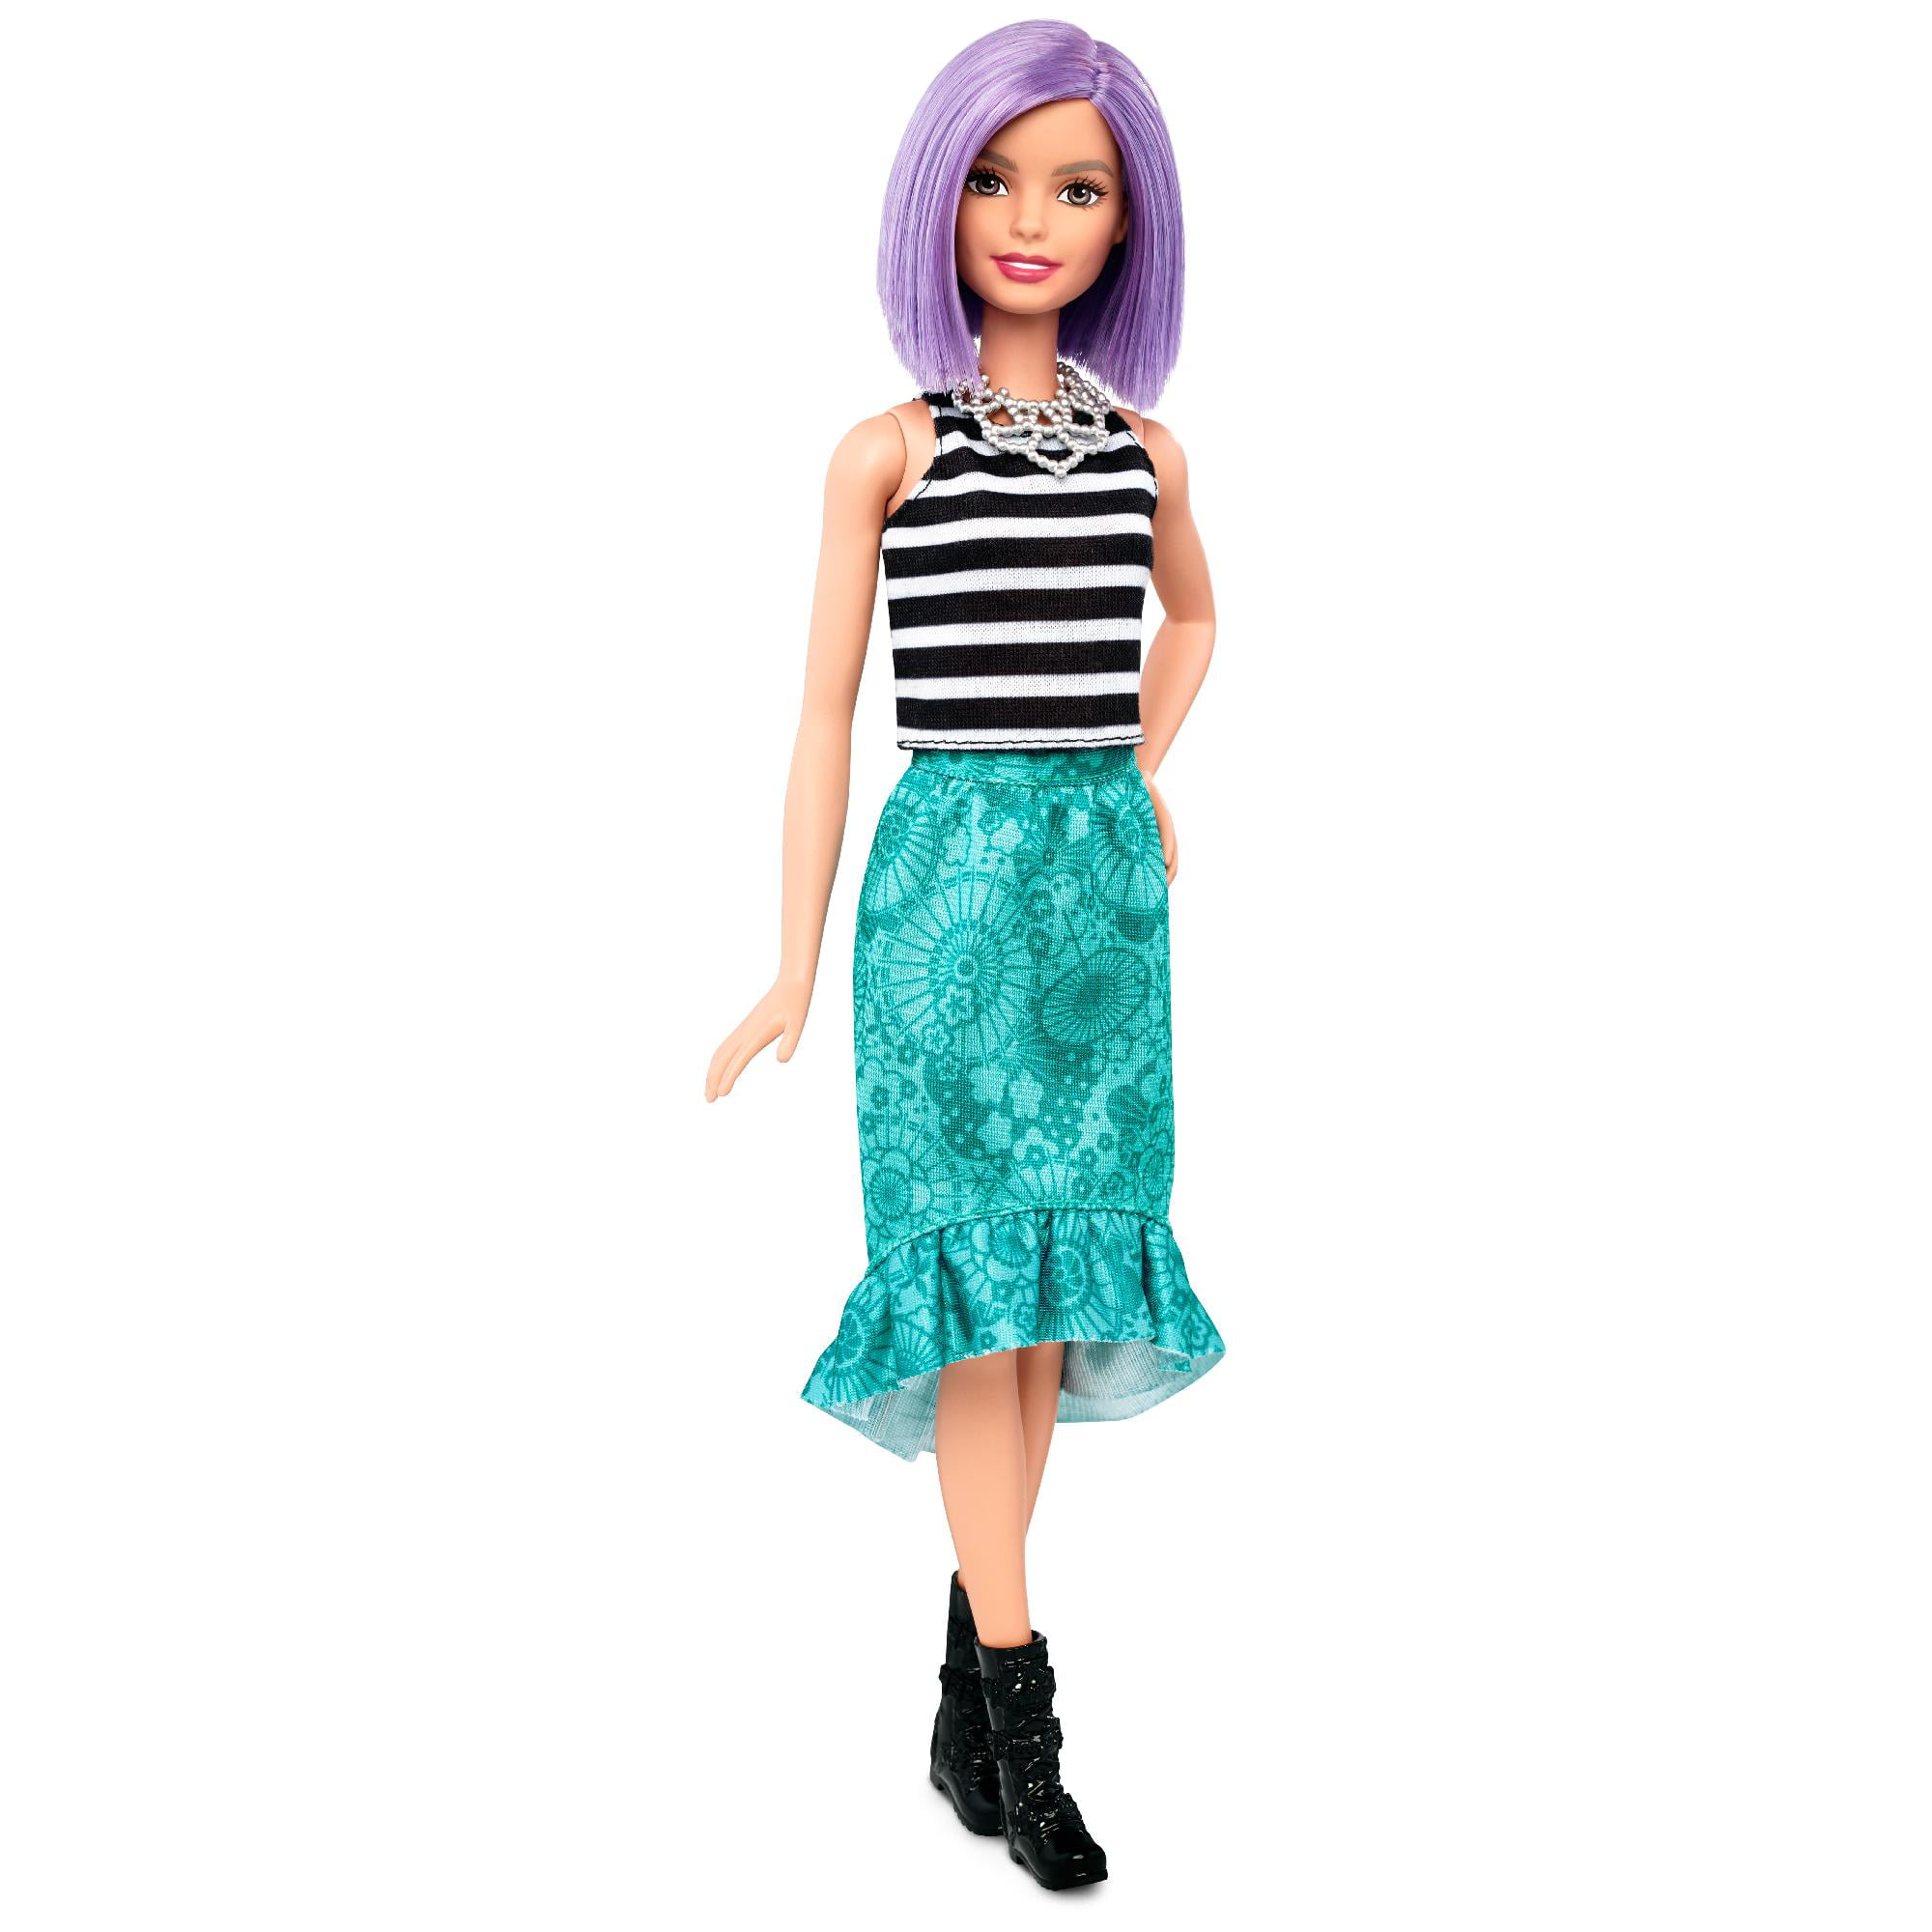 Barbie Fashionistas Doll 51 Polka Dot Fun Walmart Com